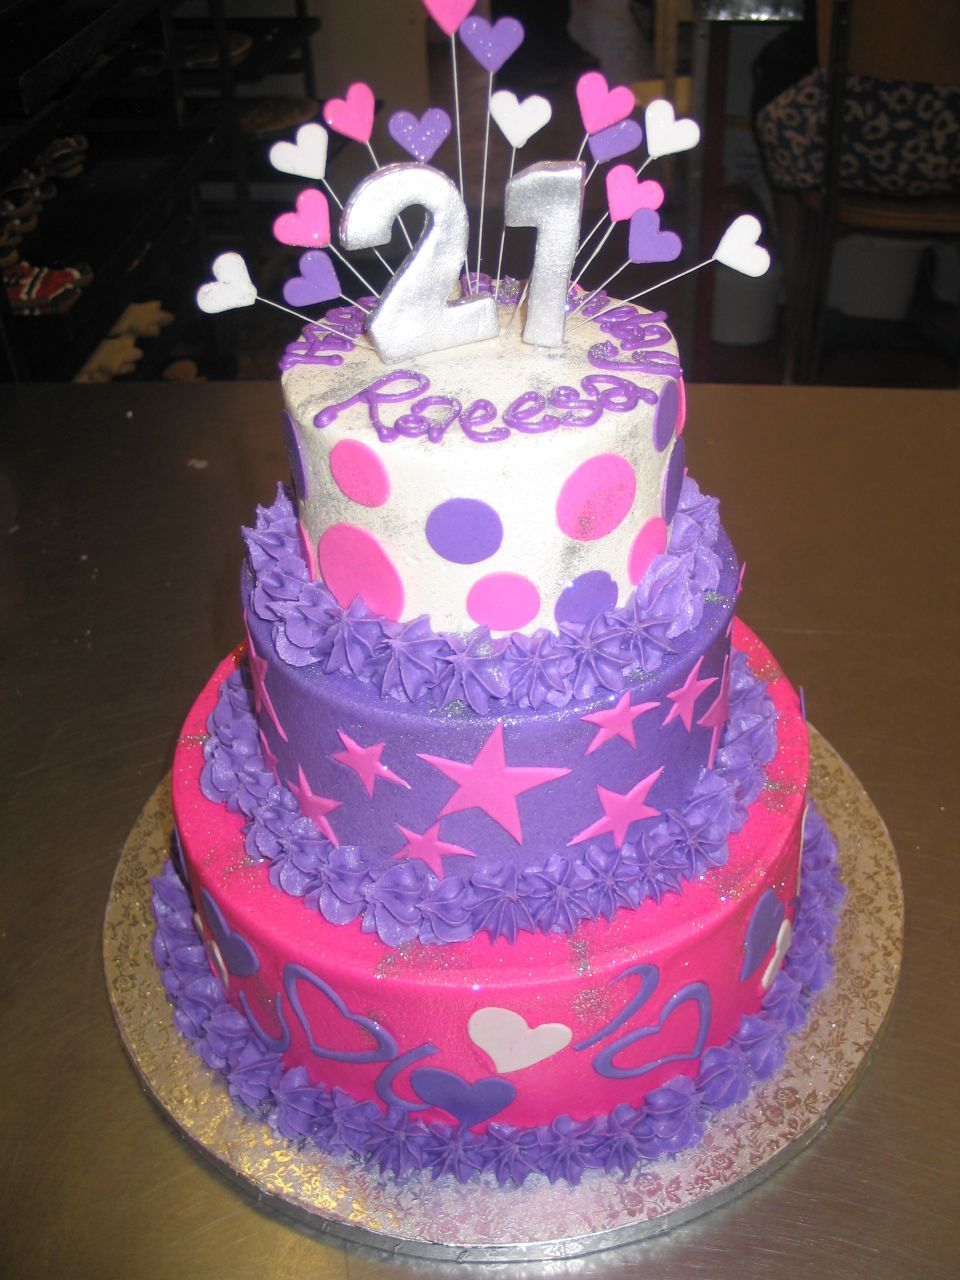 Decoration Of Birthday Cake : 21st Birthday Cakes   Decoration Ideas Little Birthday Cakes